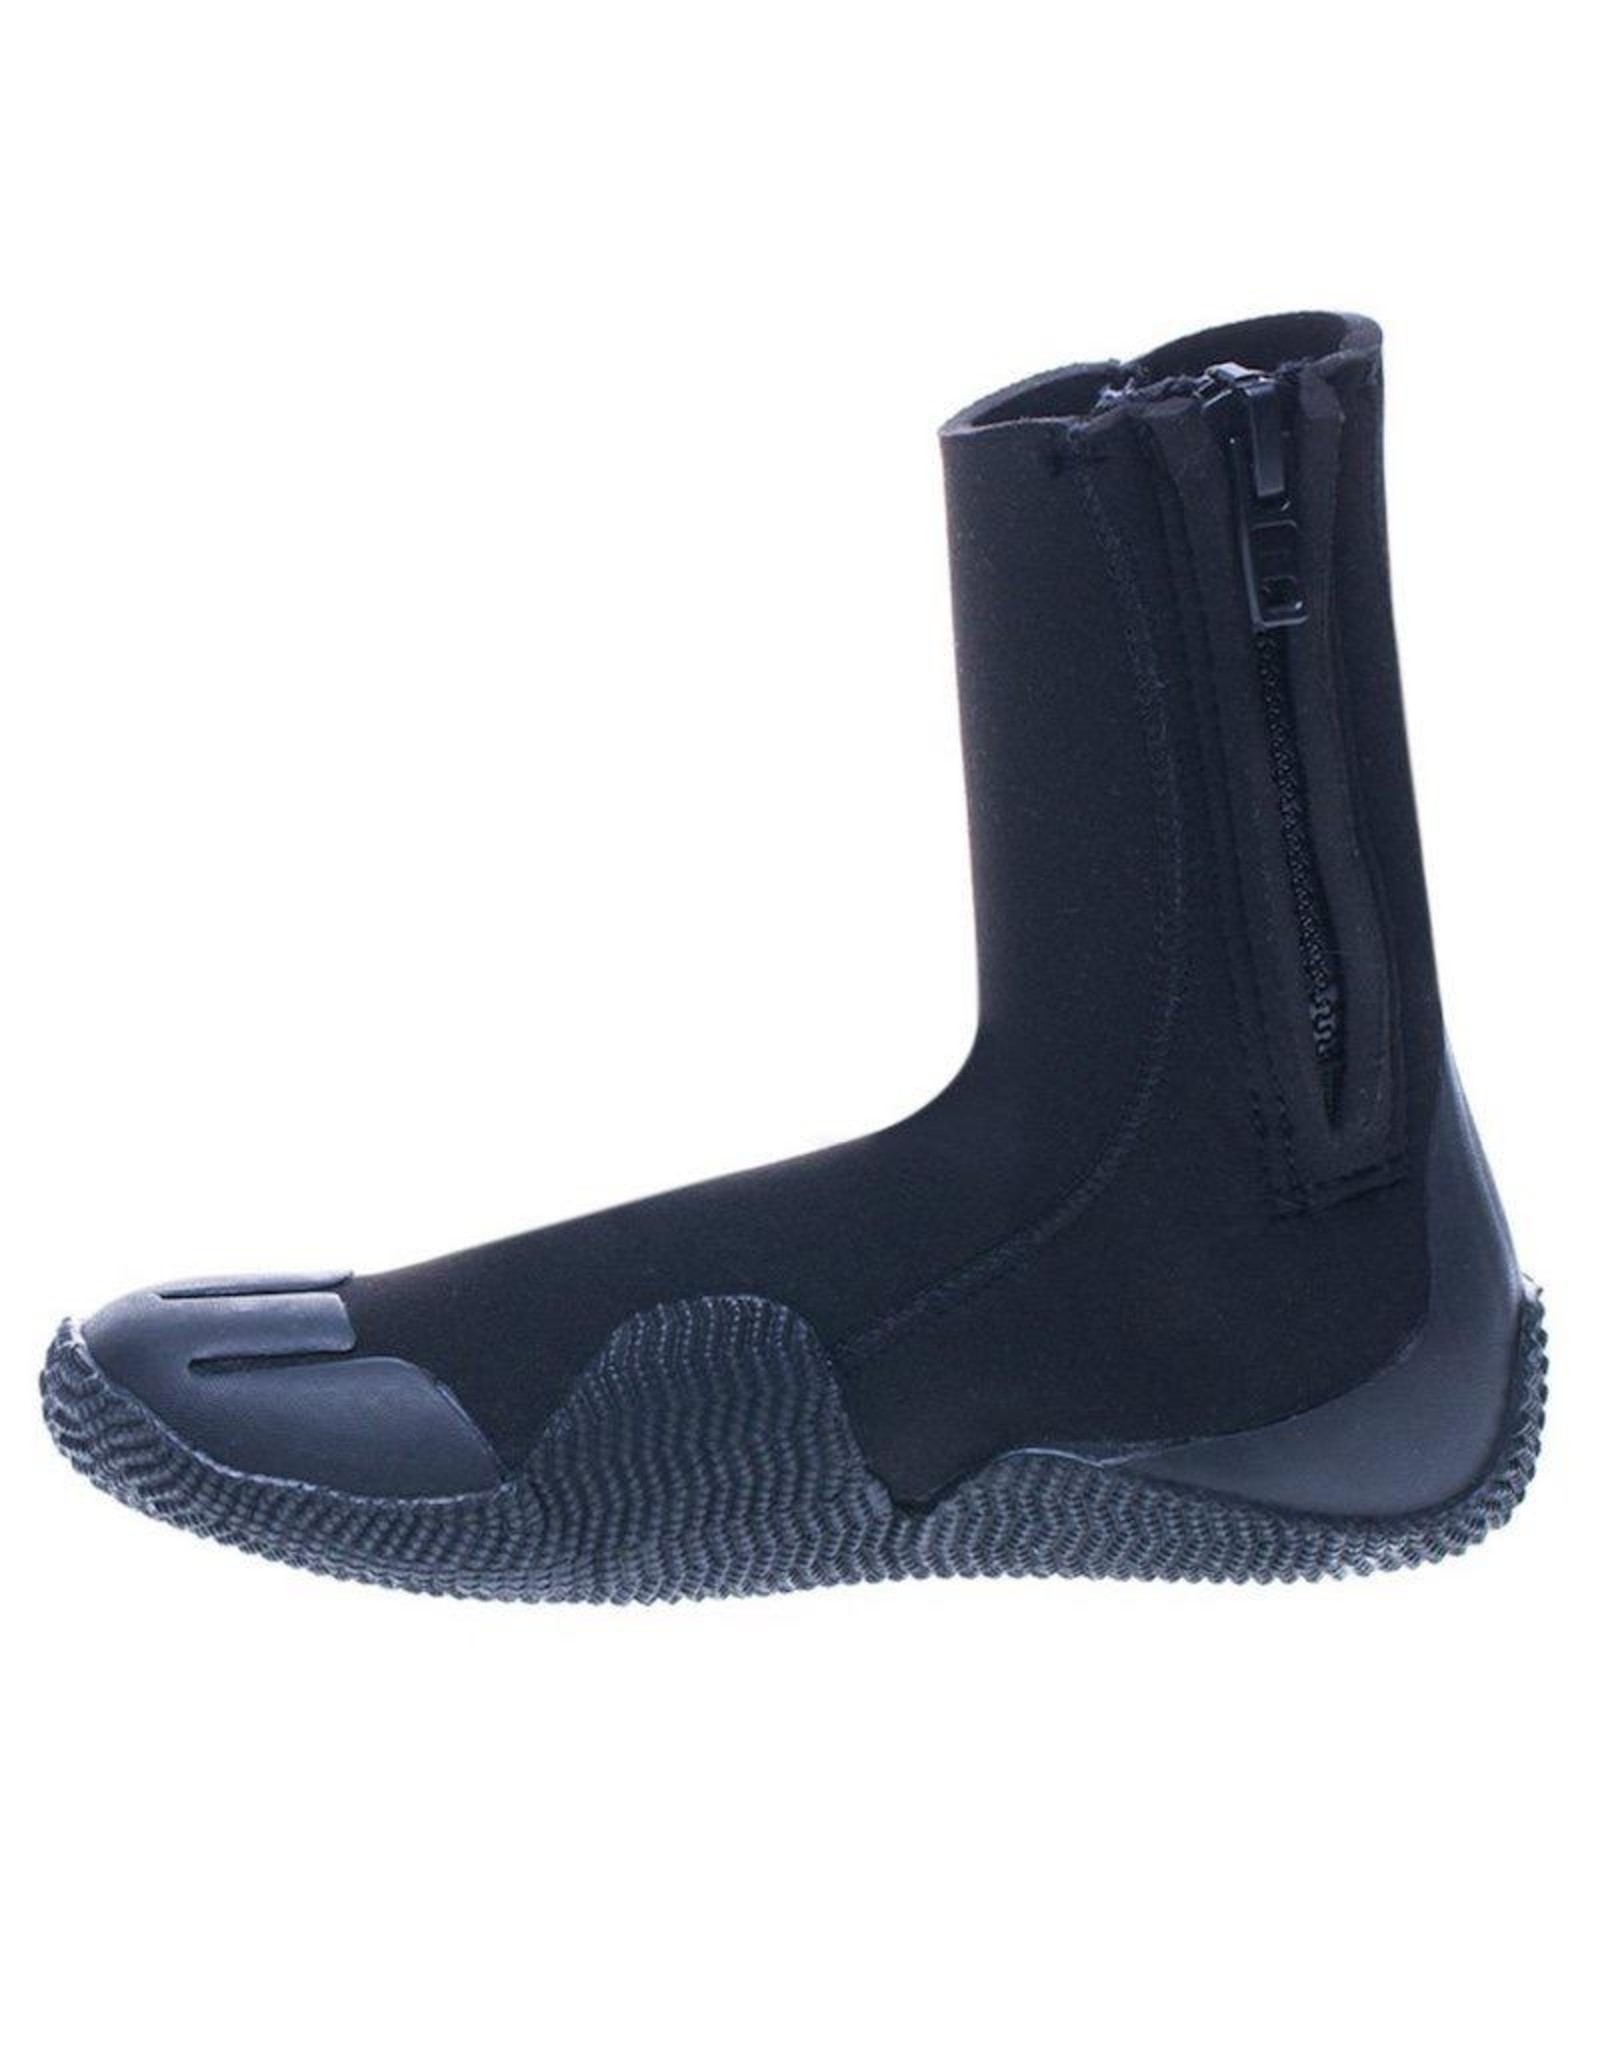 C-Skins C-Skins - Legend 5mm - 44-US11-29cm - Zipped Round Toe